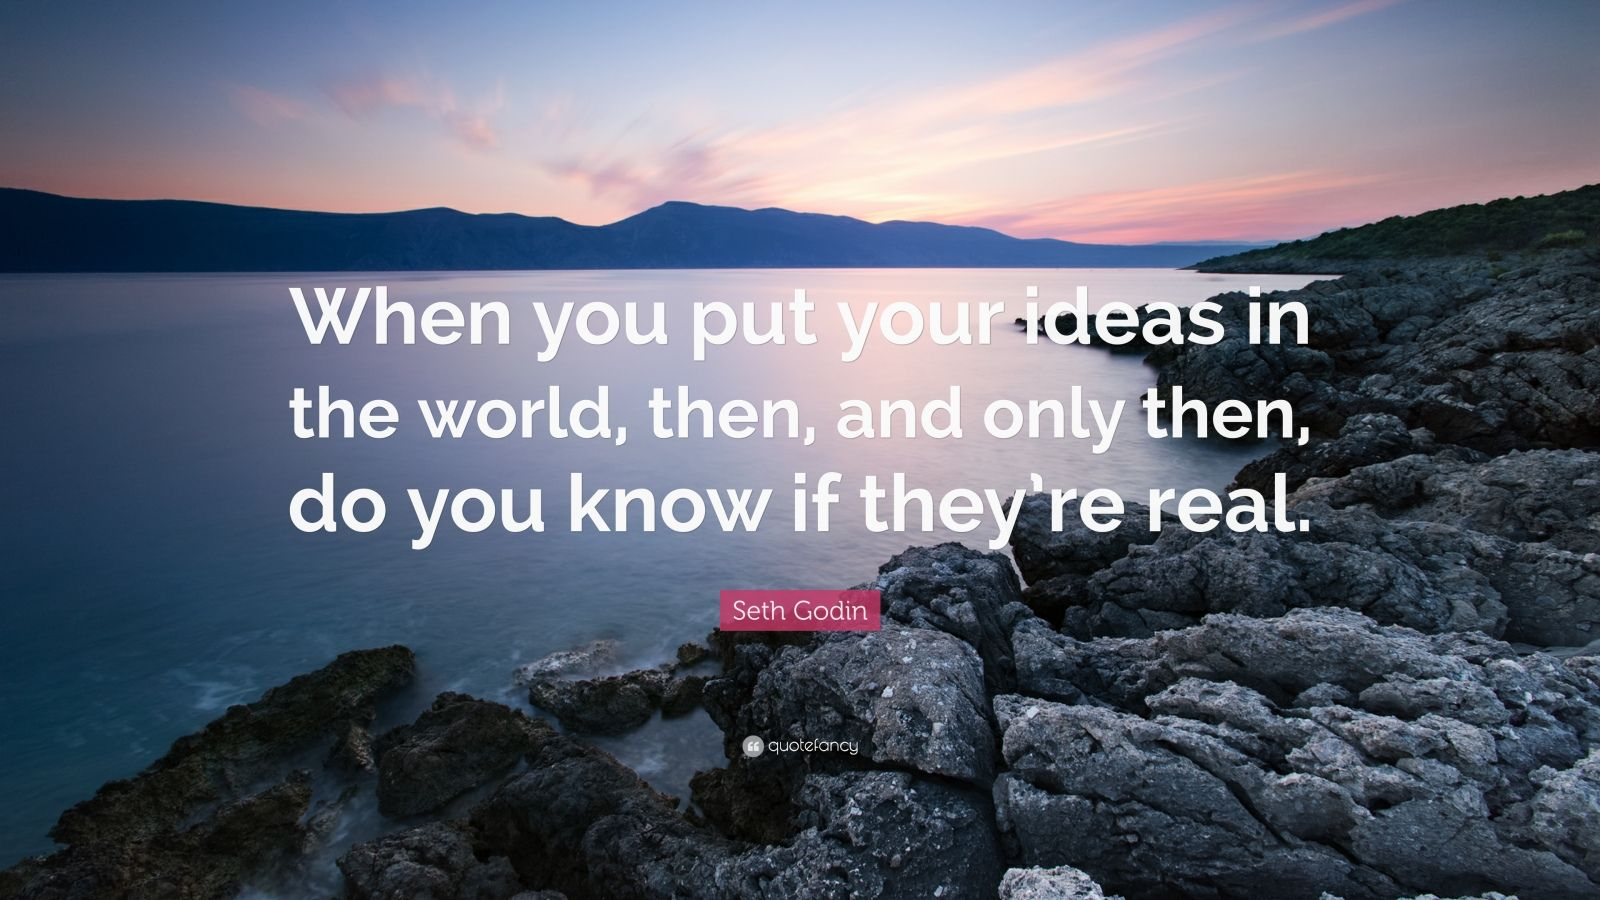 """Seth Godin Quote: """"When you put your ideas in the world, then, and only then, do you know if they're real."""""""